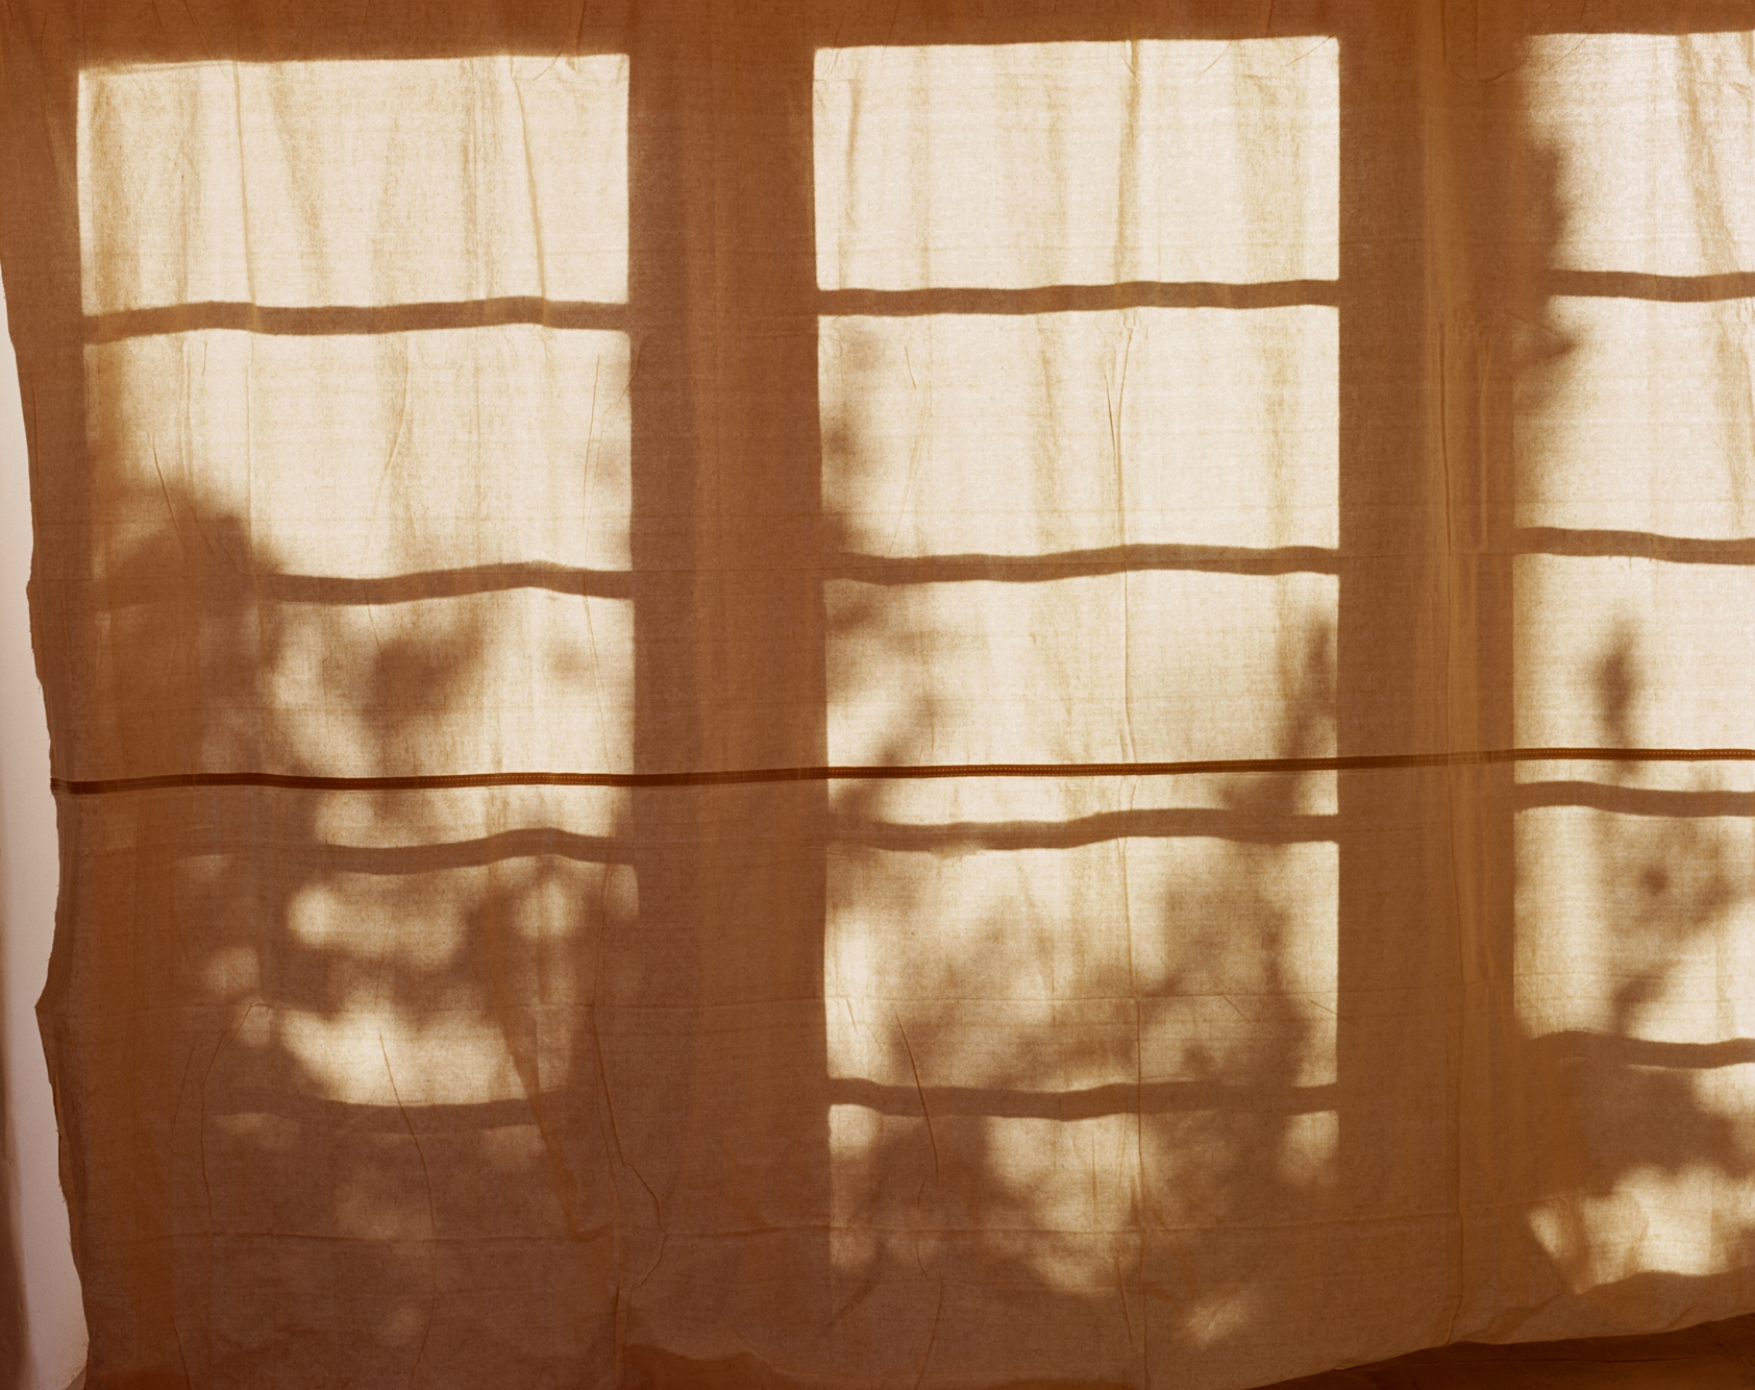 Untitled (Curtain I), 2003   /archival pigment   print, 22.5  x 30   inches  ,  edition of 5 plus 2 AP